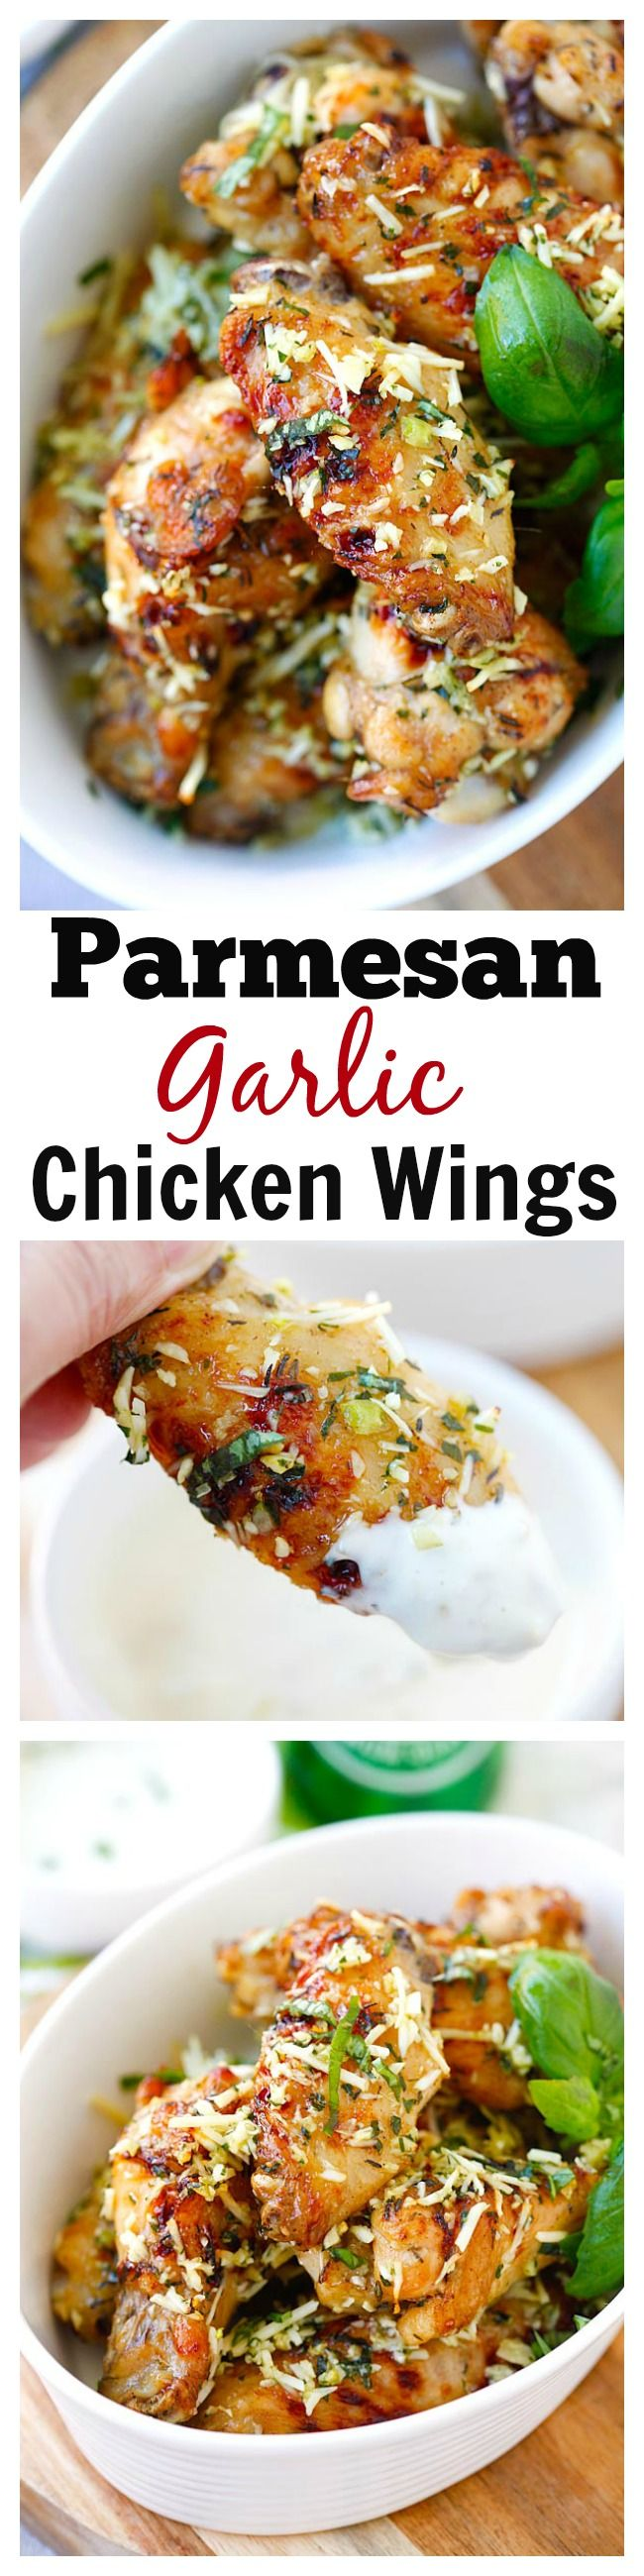 Baked Parmesan Garlic Chicken Wings – best and easiest baked chicken wings EVER with parmesan, garlic, basil, with blue cheese mustard dressing. Recipe from @steamykitchen | rasamalaysia.com